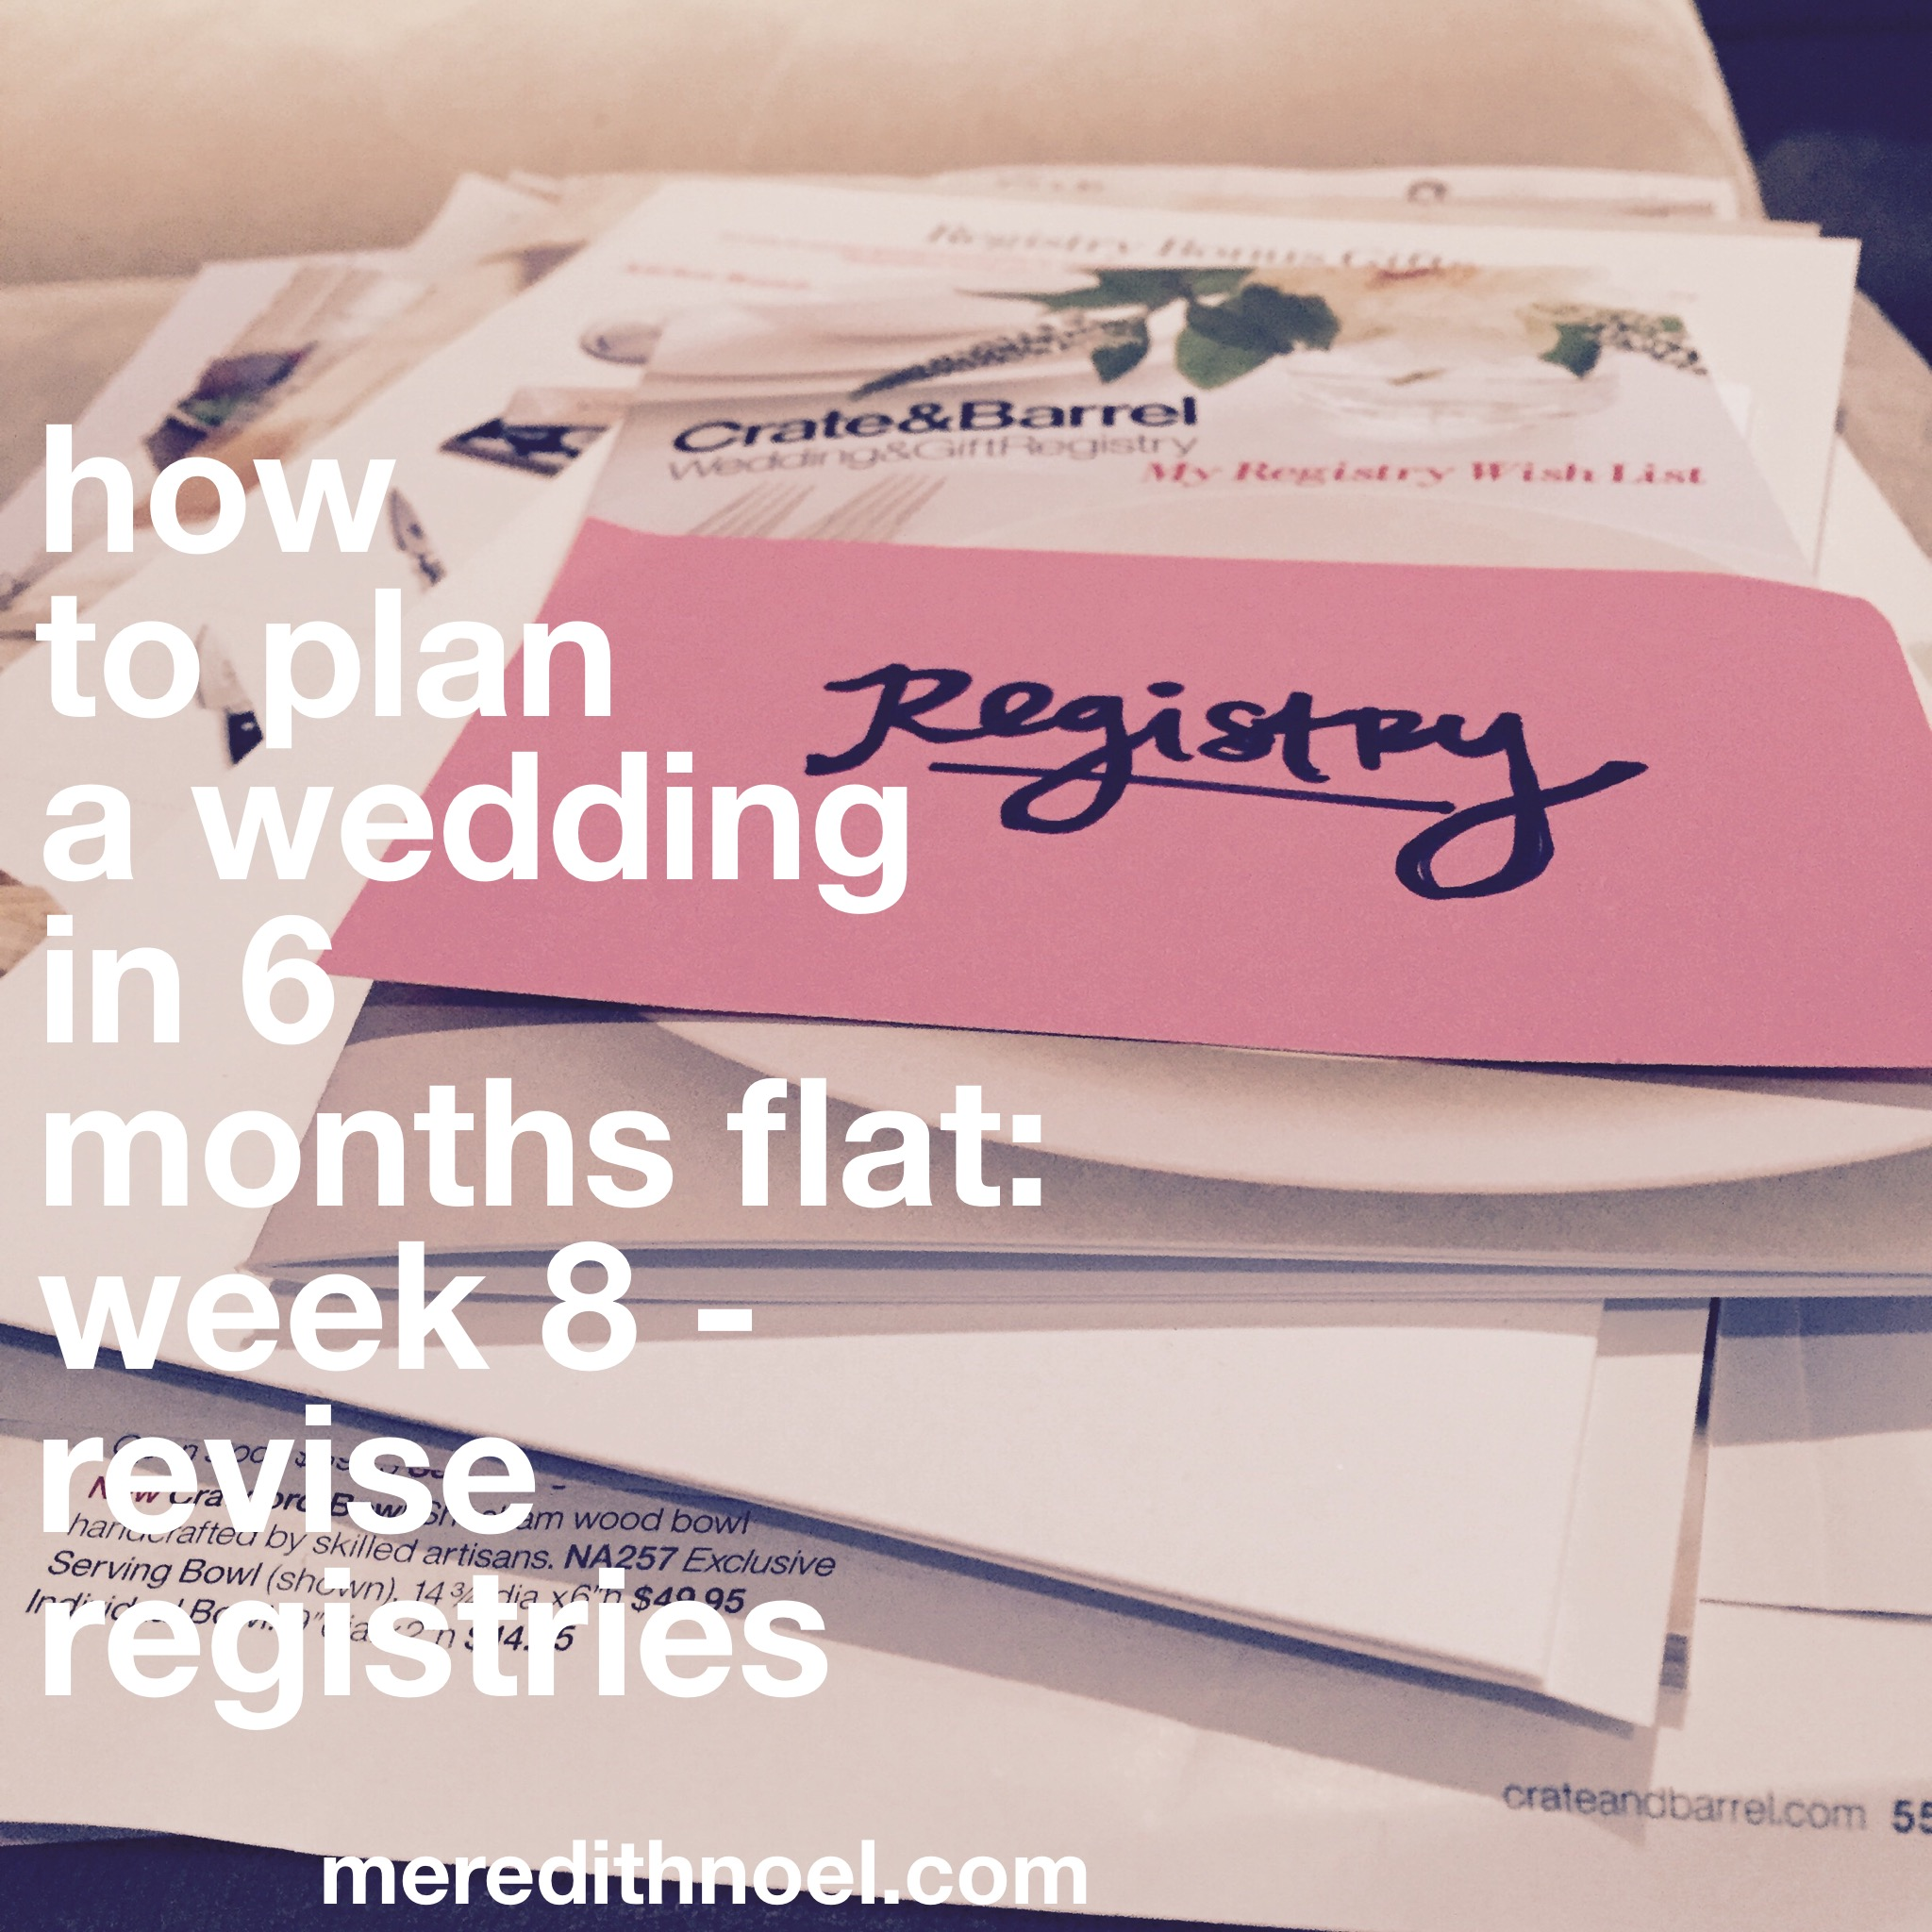 How To Plan A Wedding In 6 Months Flat: Week 8